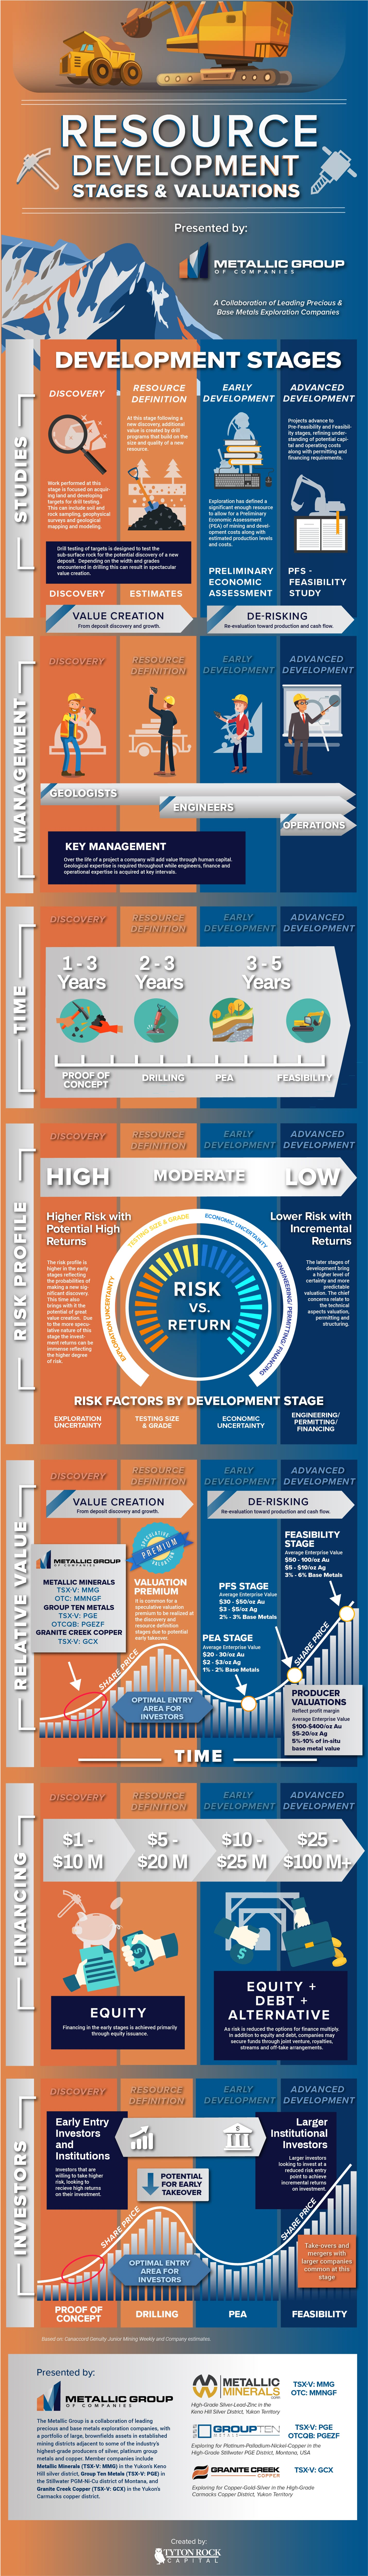 Metallic Group Resource Development Stages and Valuation infographic